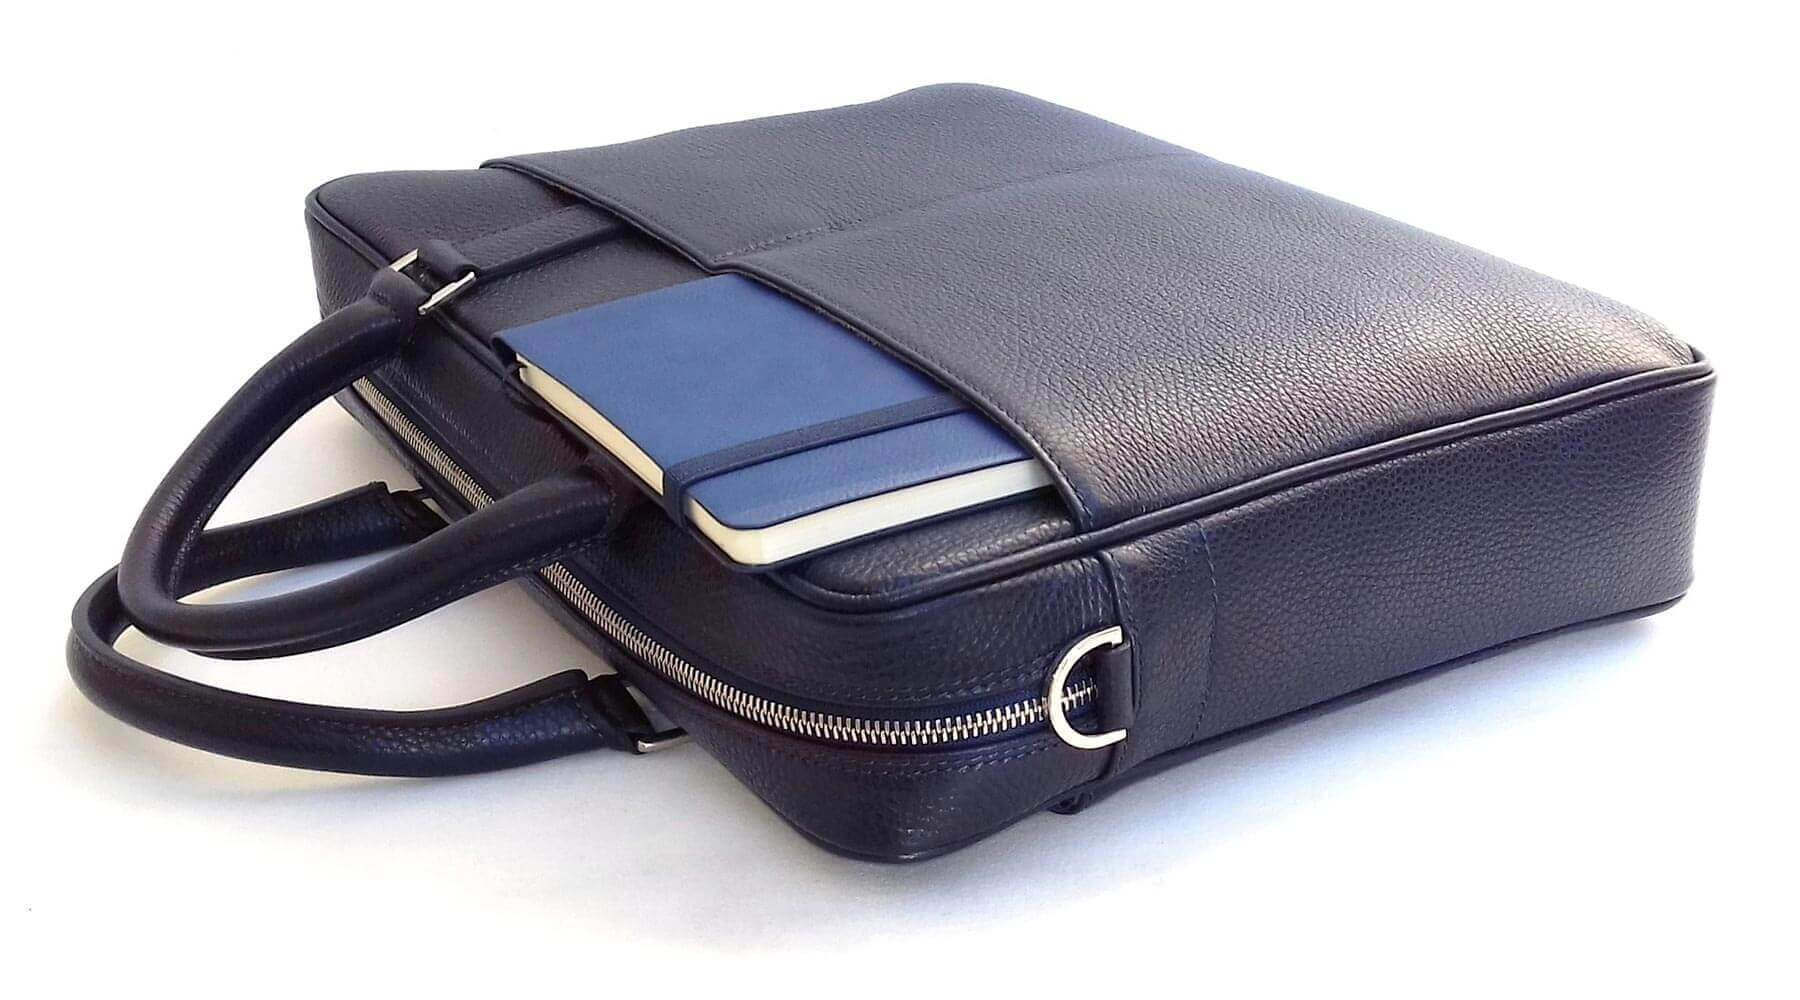 Italian Leather Briefcase Made in Italy - Shop for Italian leather briefcases today - DiLoro Switzerland